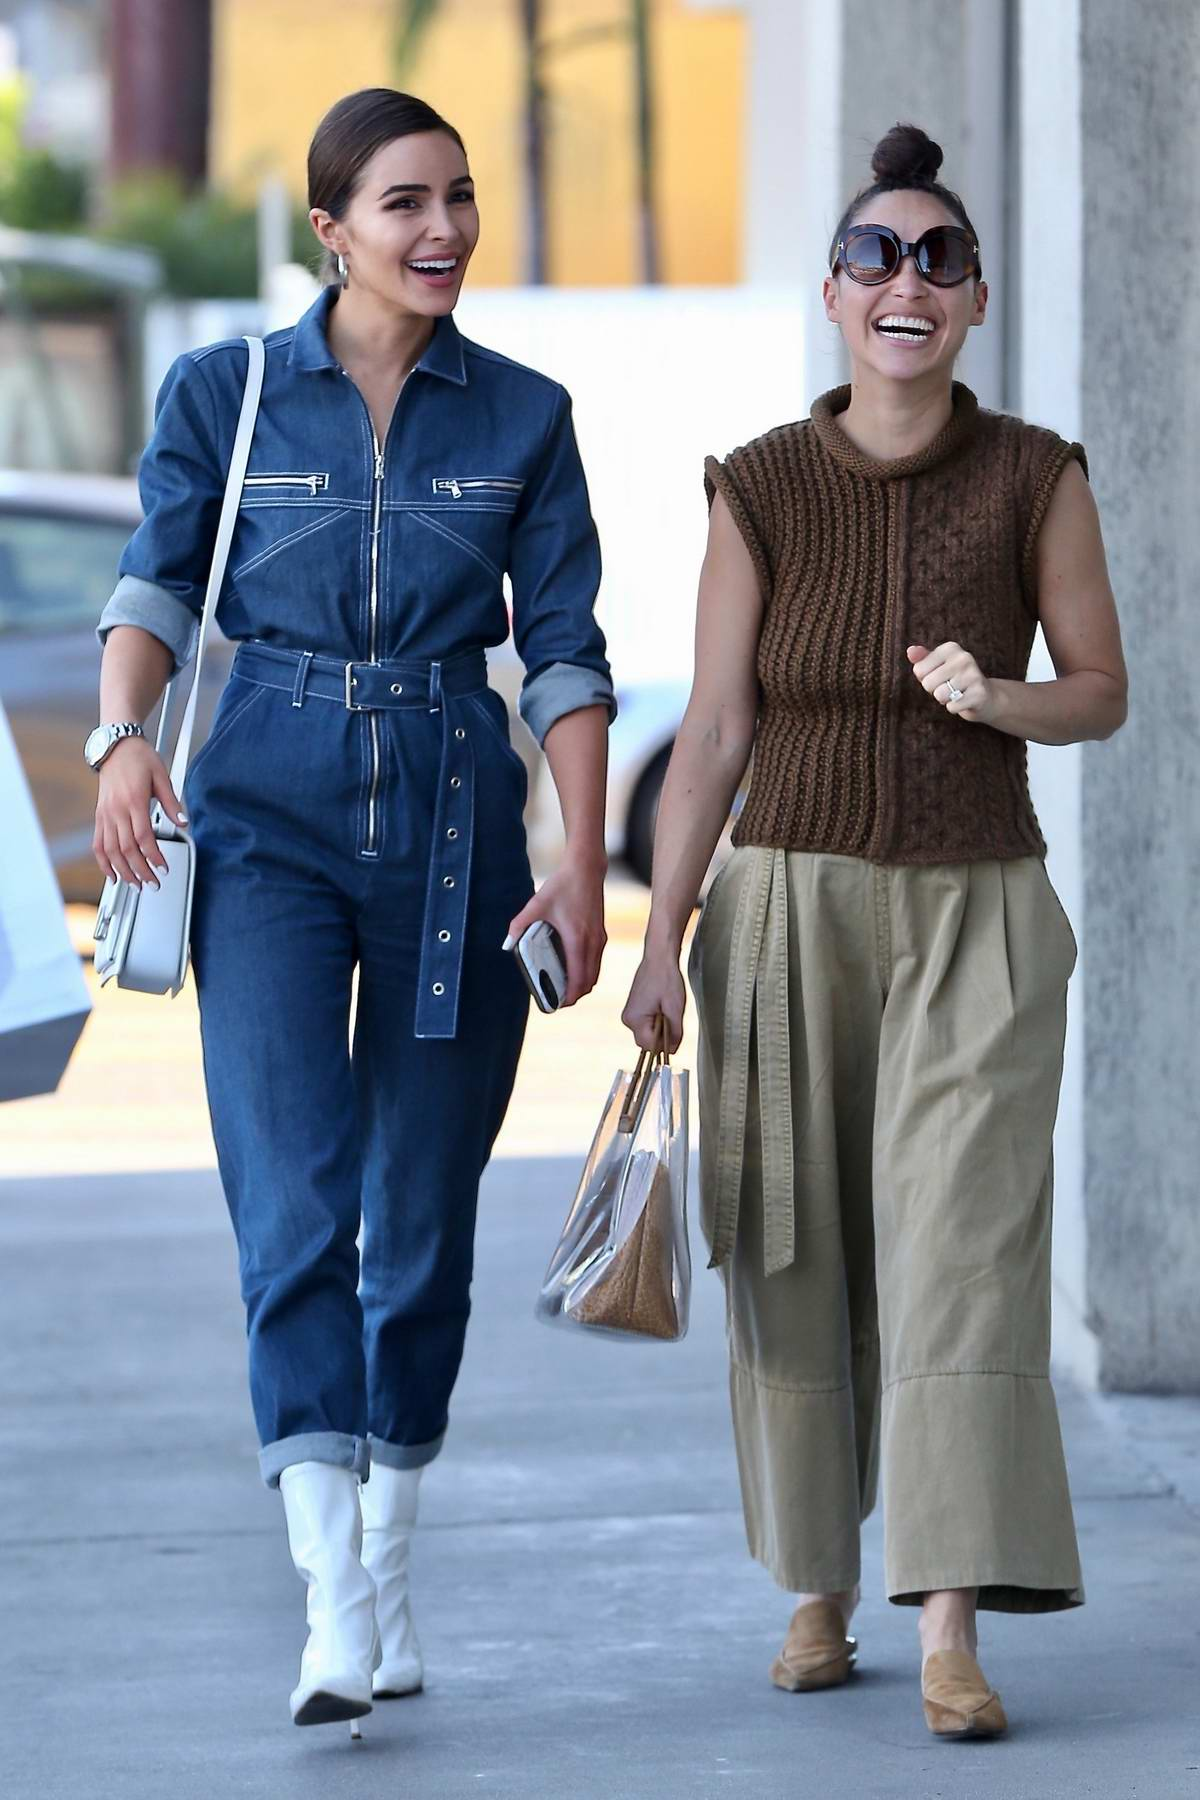 Olivia Culpo sports a denim jumpsuit while visiting a Psychic with Cara Santana in Los Angeles